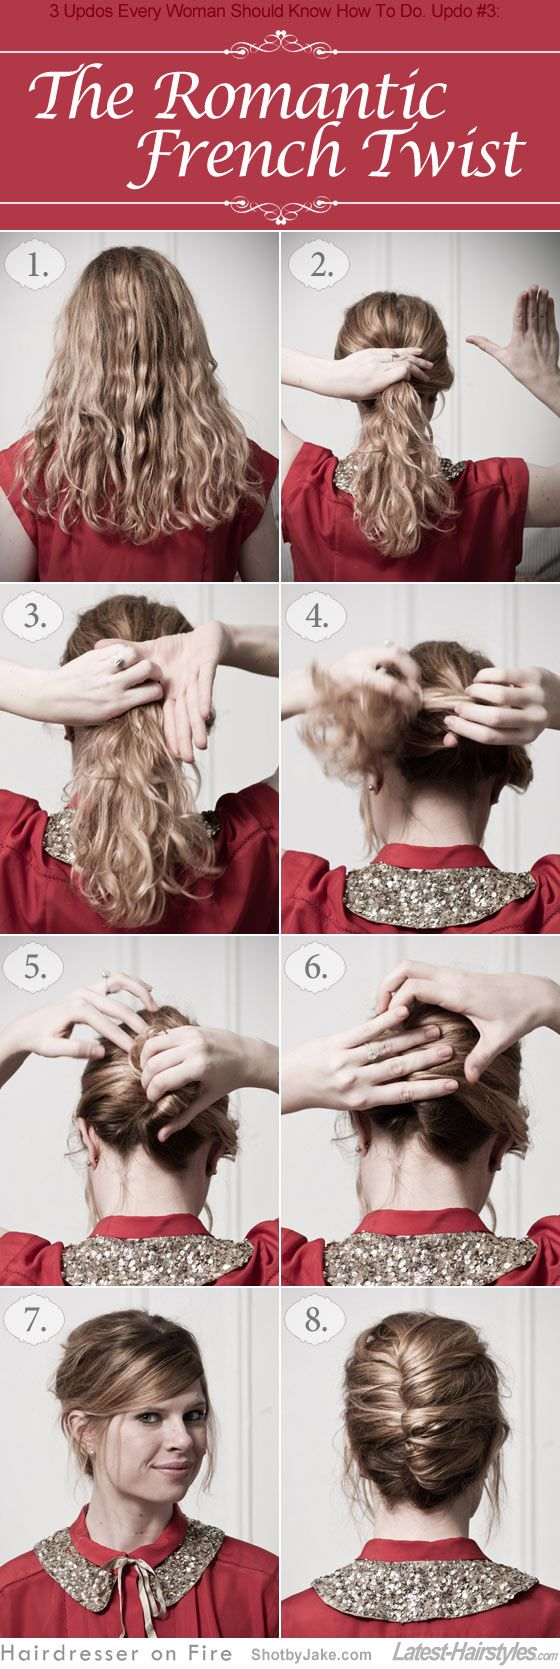 Apparently all women should know how to do this style my style